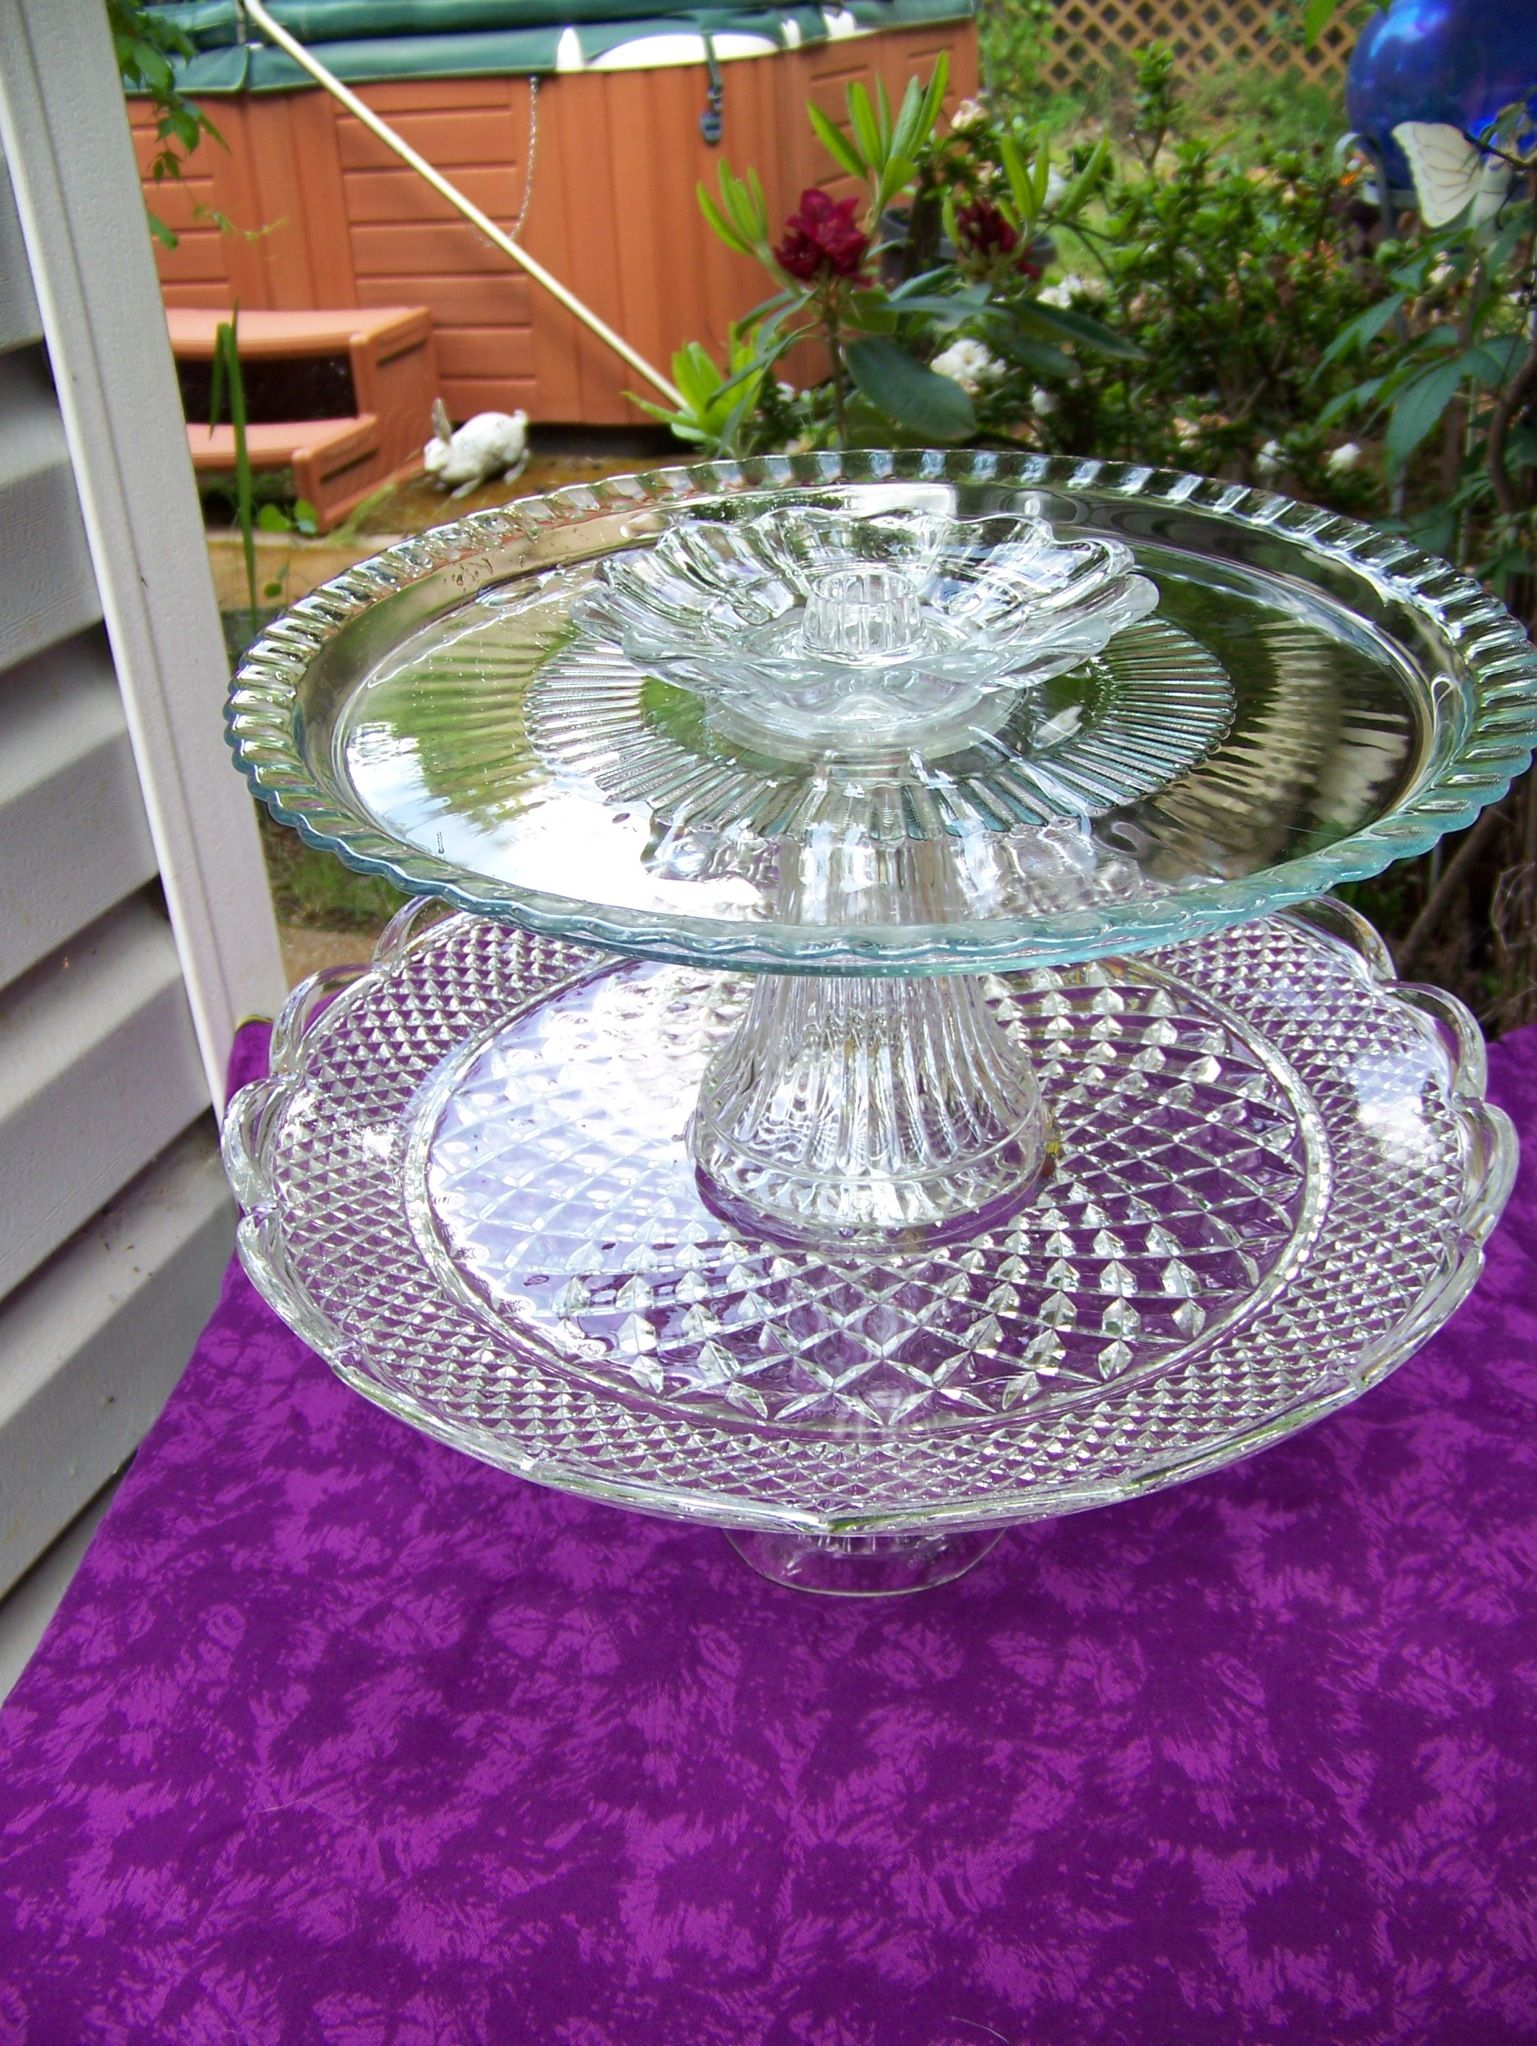 Closer look..recycled platters